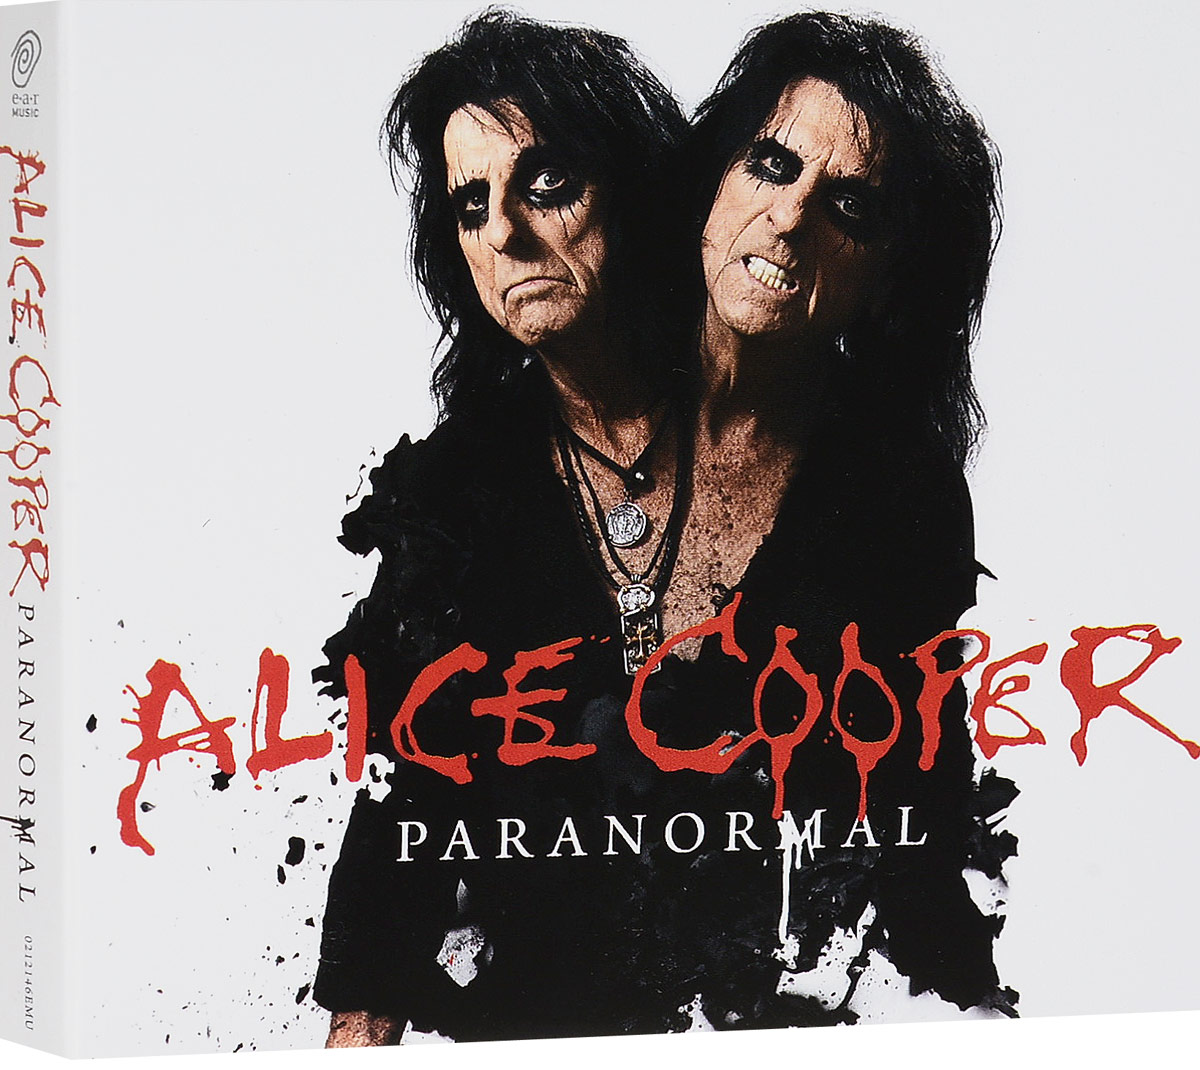 Элис Купер Alice Cooper. Paranormal (2 CD) 4x 2300kv rs2205 racing edition motor 4x lhi lite 20a blheli s speed controller bb1 2 4s brushless esc for fpv racer